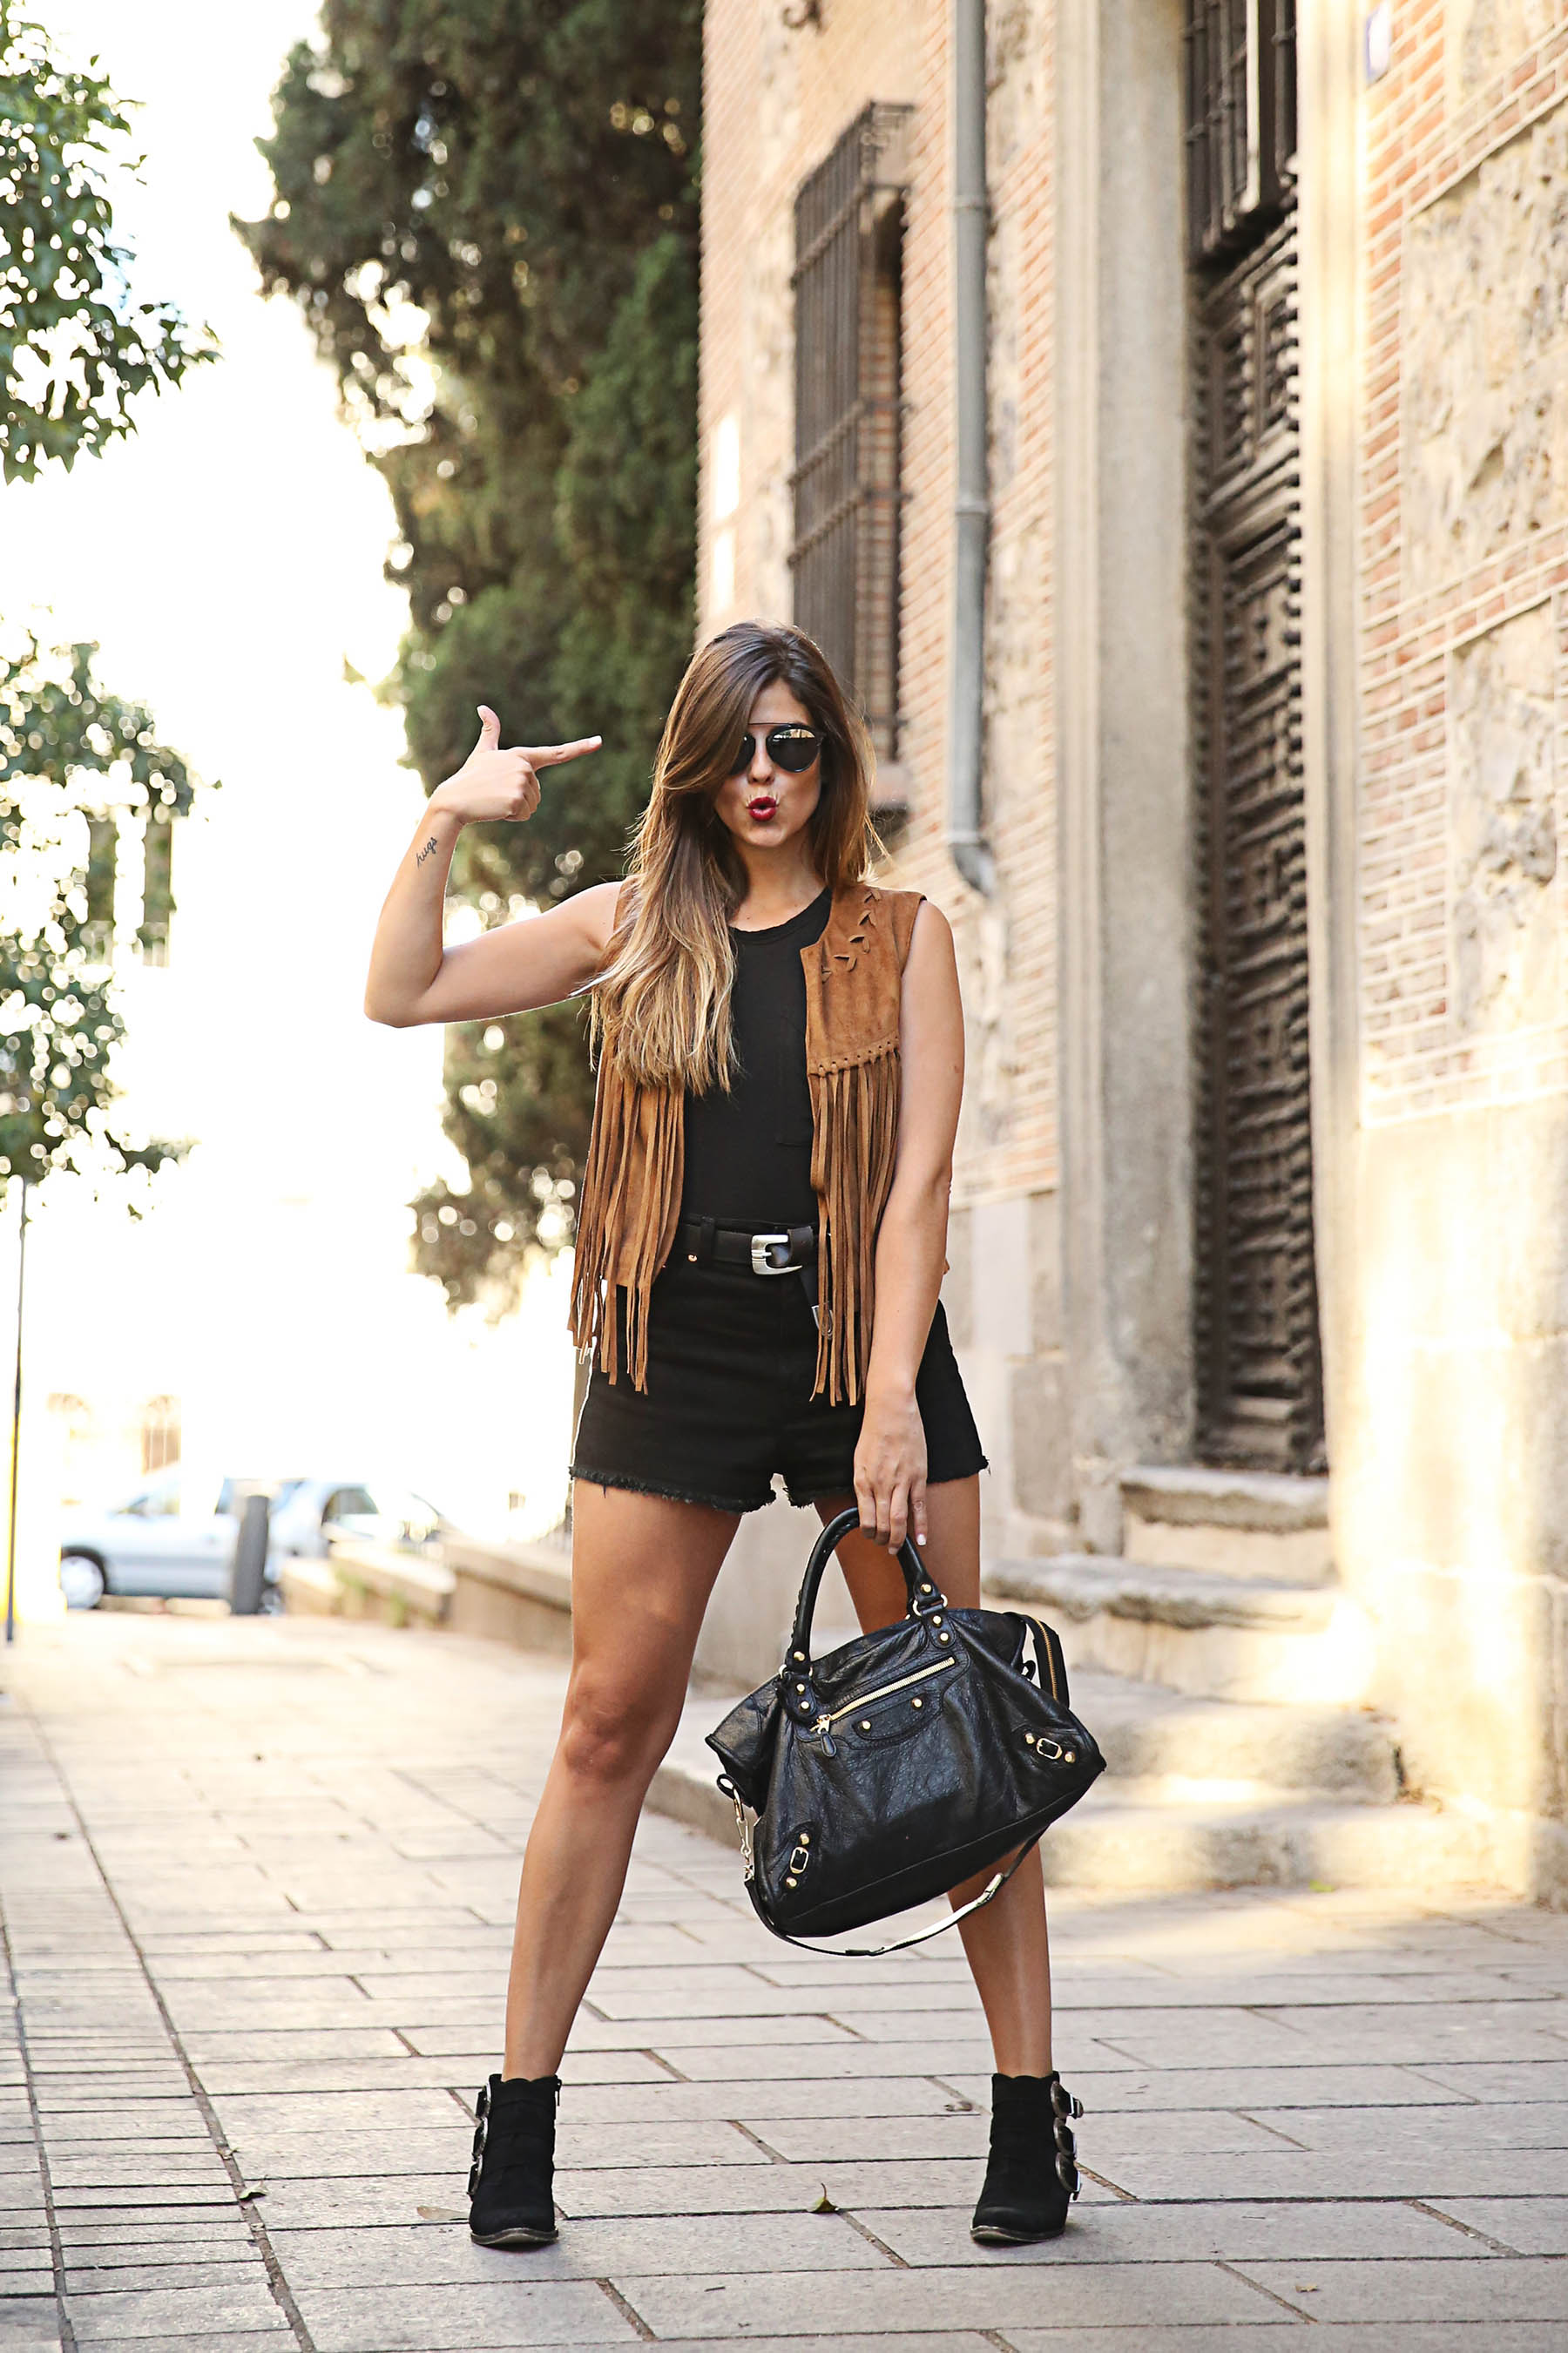 trendy-taste-look-outfit-street-style-ootd-blog-blogger-fashion-spain-moda-españa-chaleco-flecos-fringed-vest-balenciaga-mustt-botines-camperos-shorts-negros-dior-sunnies-gafas-8